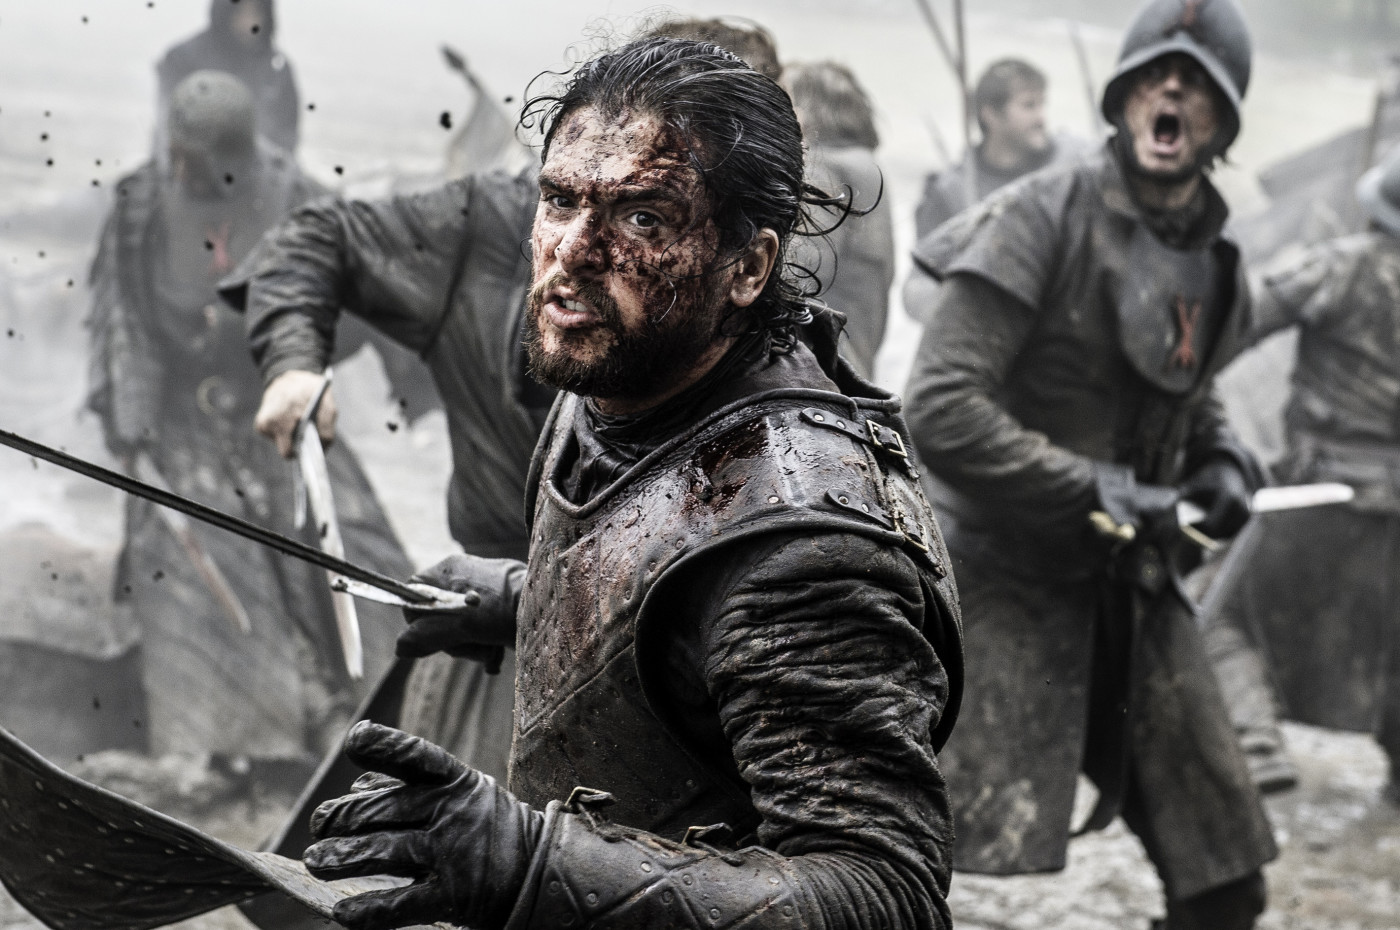 game-of-thrones-jon-snow-battle-scene-in-battle-of-the-bastards